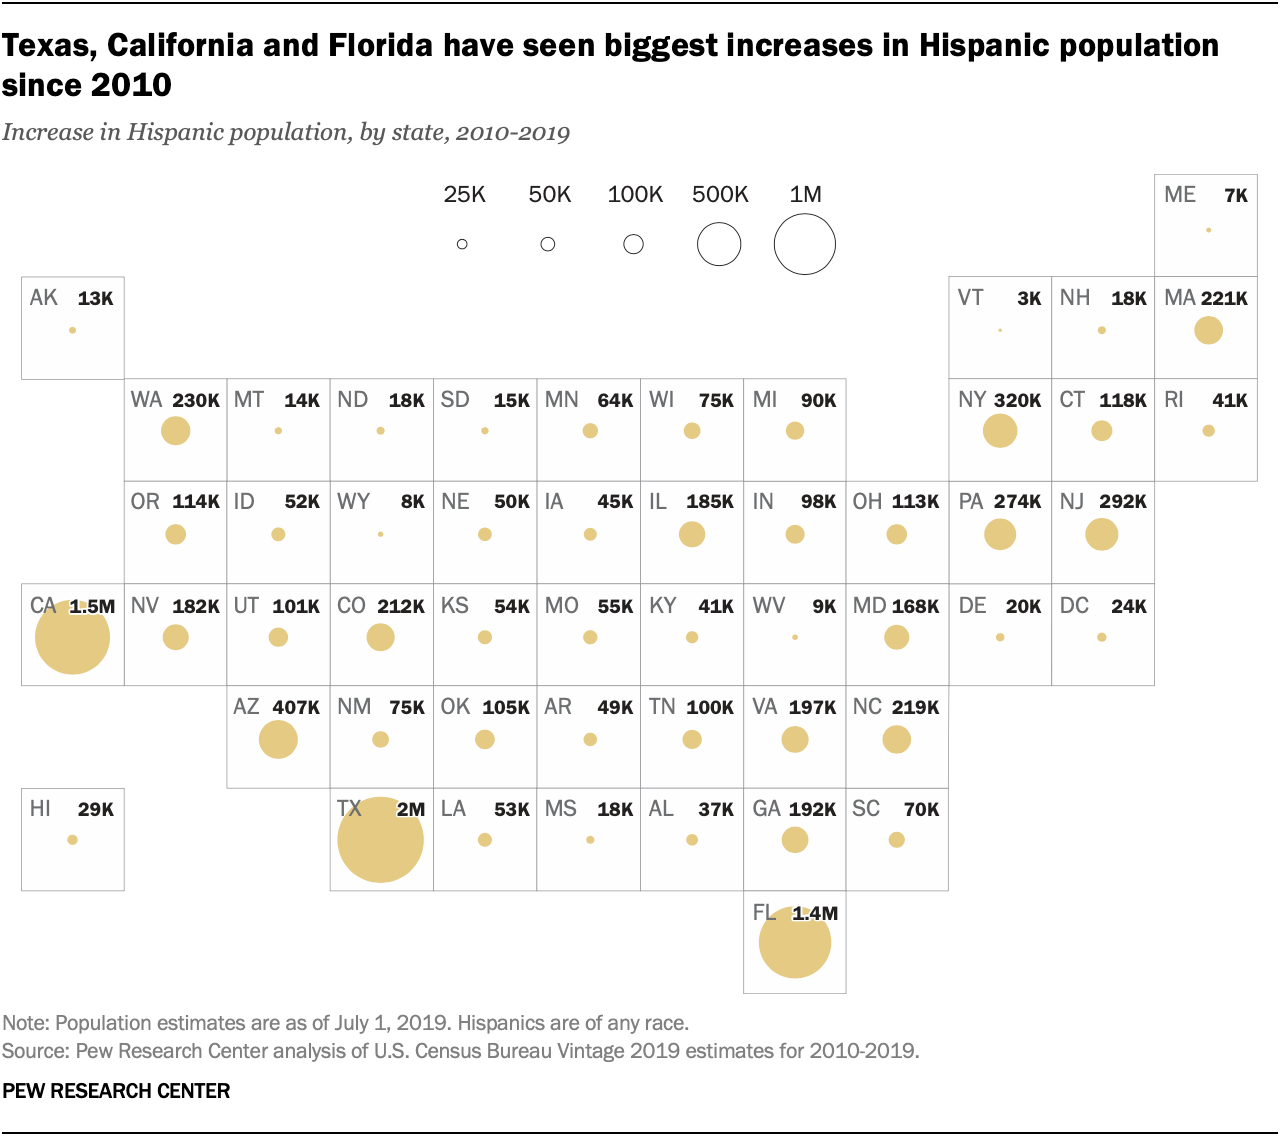 Texas, California and Florida have seen biggest increases in Hispanic population since 2010